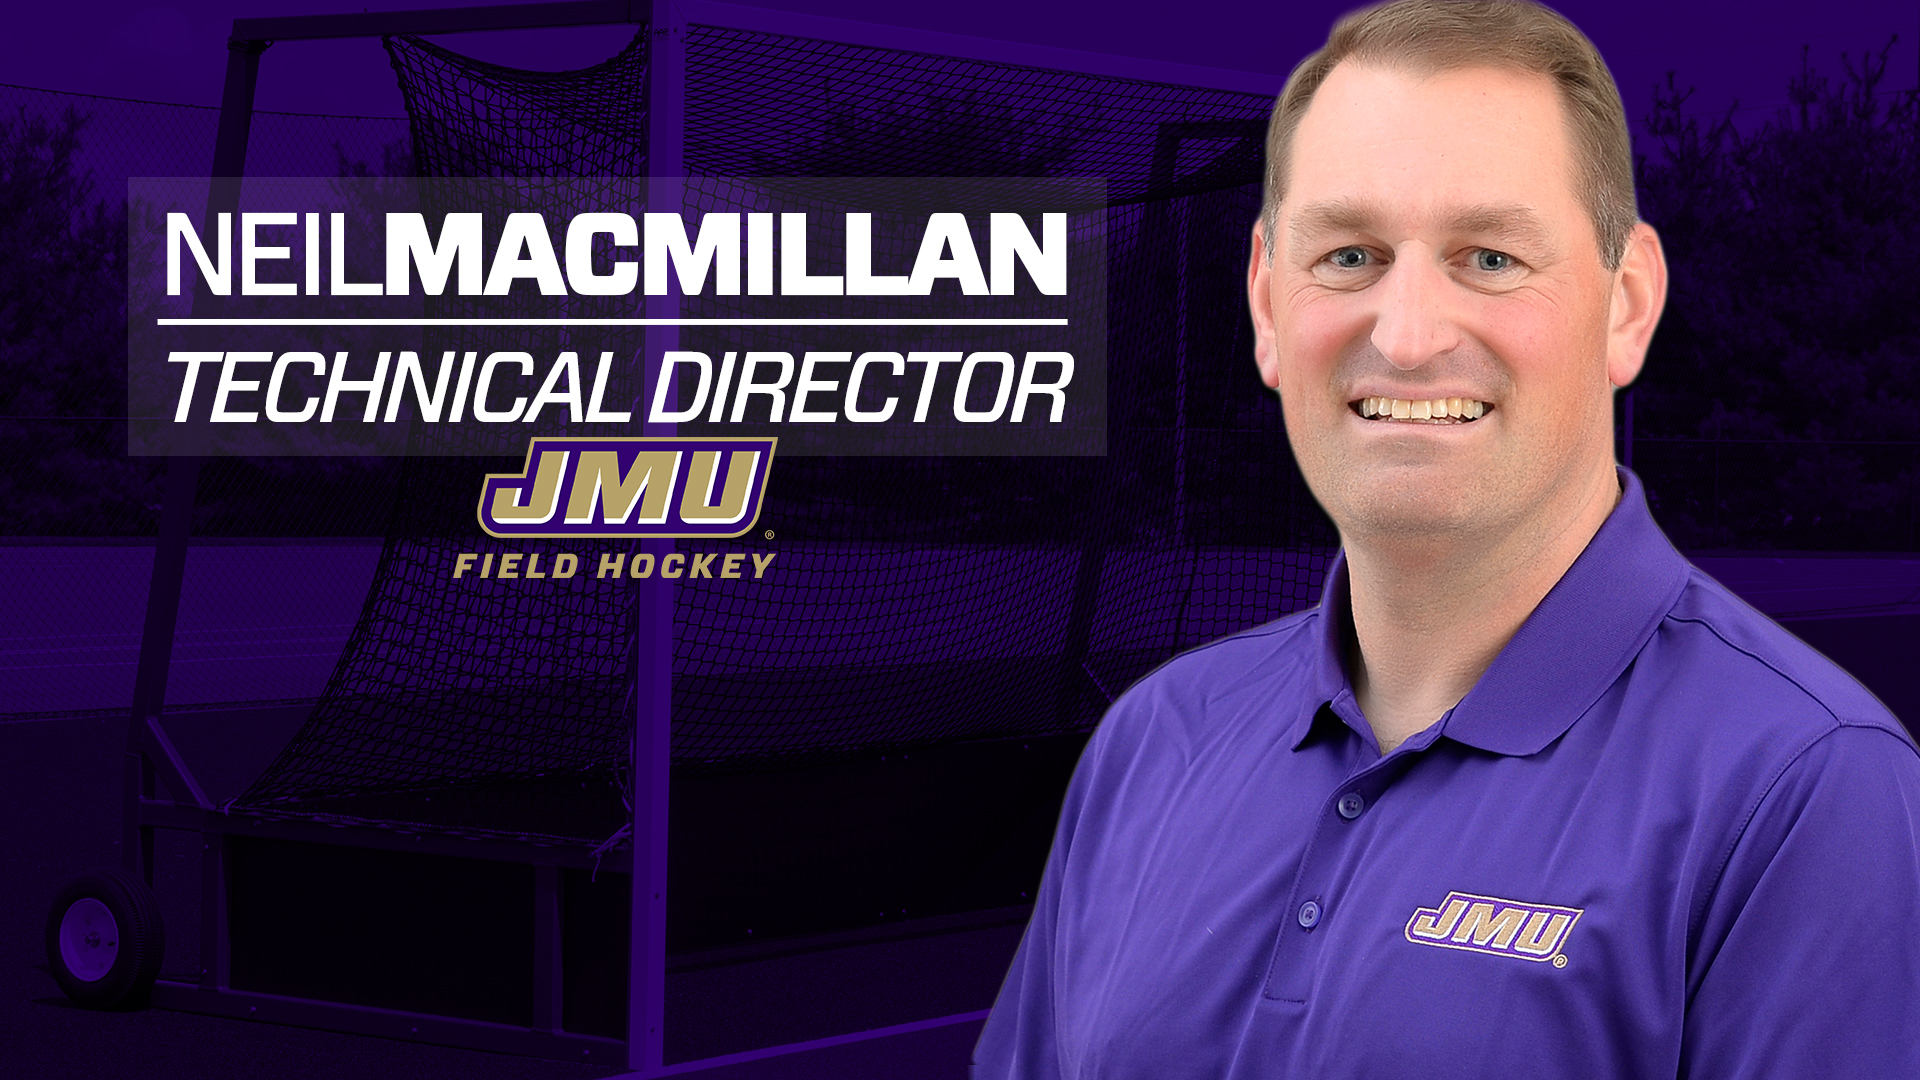 Field Hockey: Dukes Welcome Neil Macmillan to Staff as Technical Director)